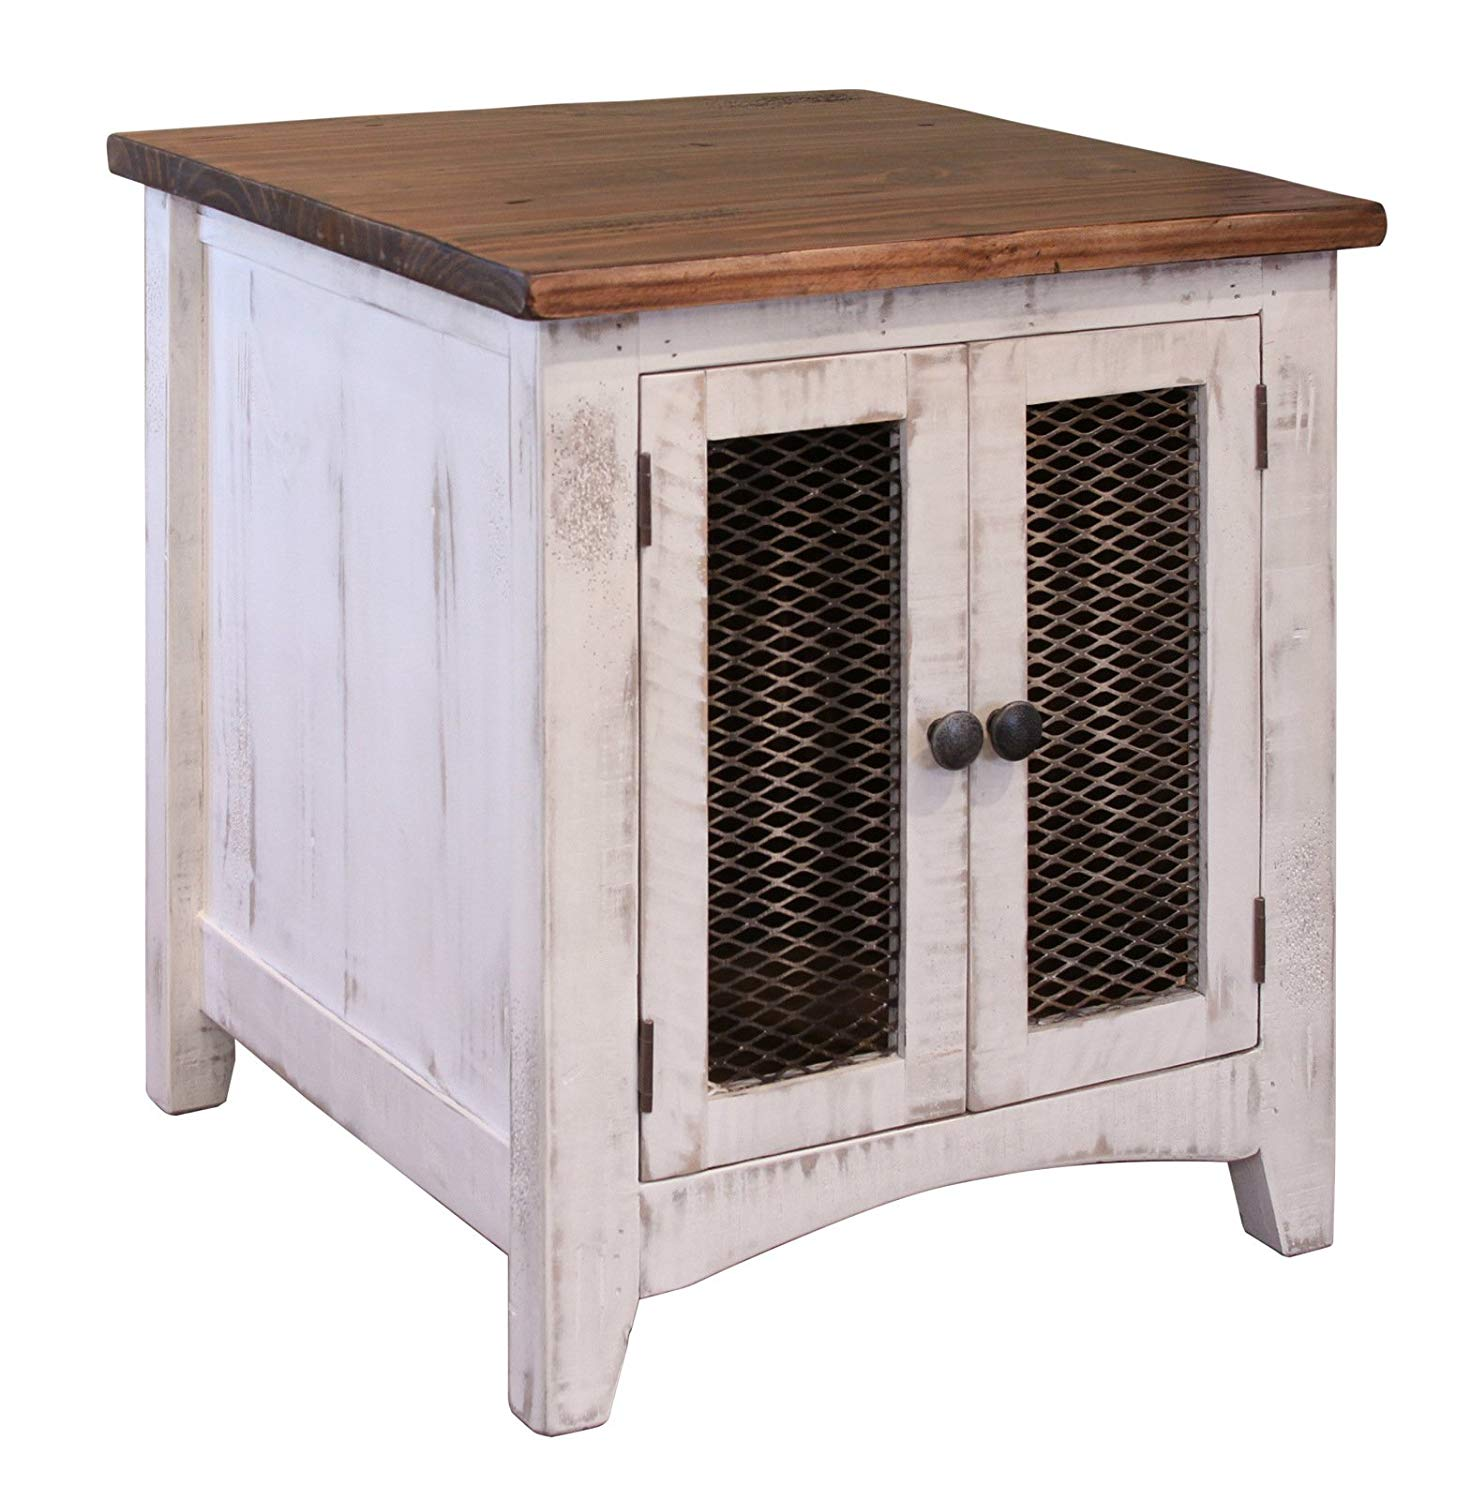 anton quality solid wood distressed white end table with outdoor accent doors side has storage behind mesh and arrives fully assembled kitchen frames vancouver black trestle